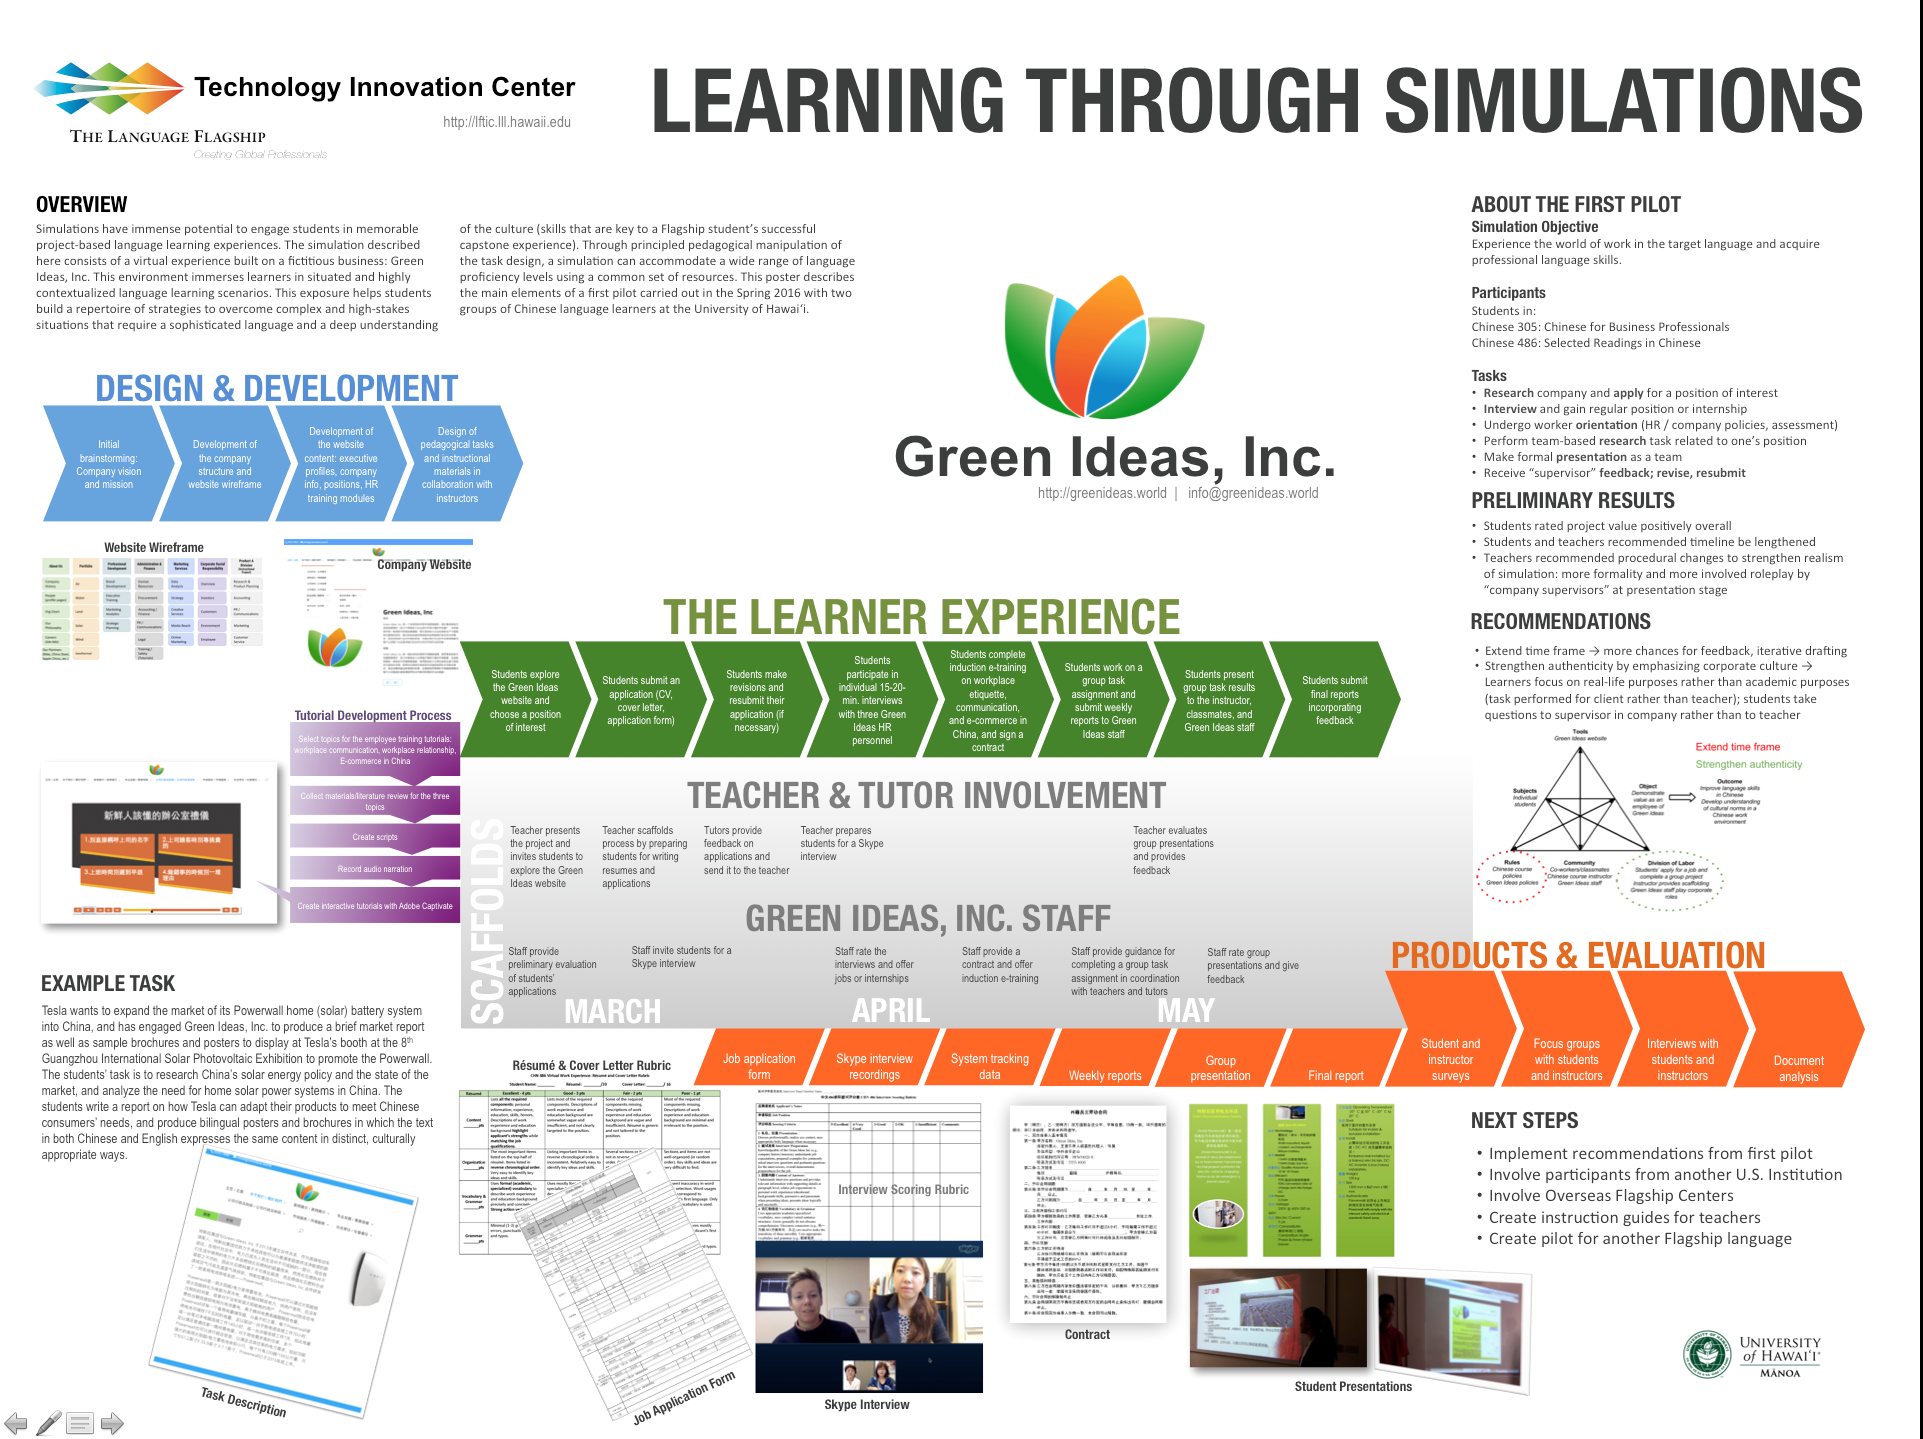 Poster: Learning Through Simulations. This simulation provides a virtual experience built around a fictitious business: Green Ideas, Inc.